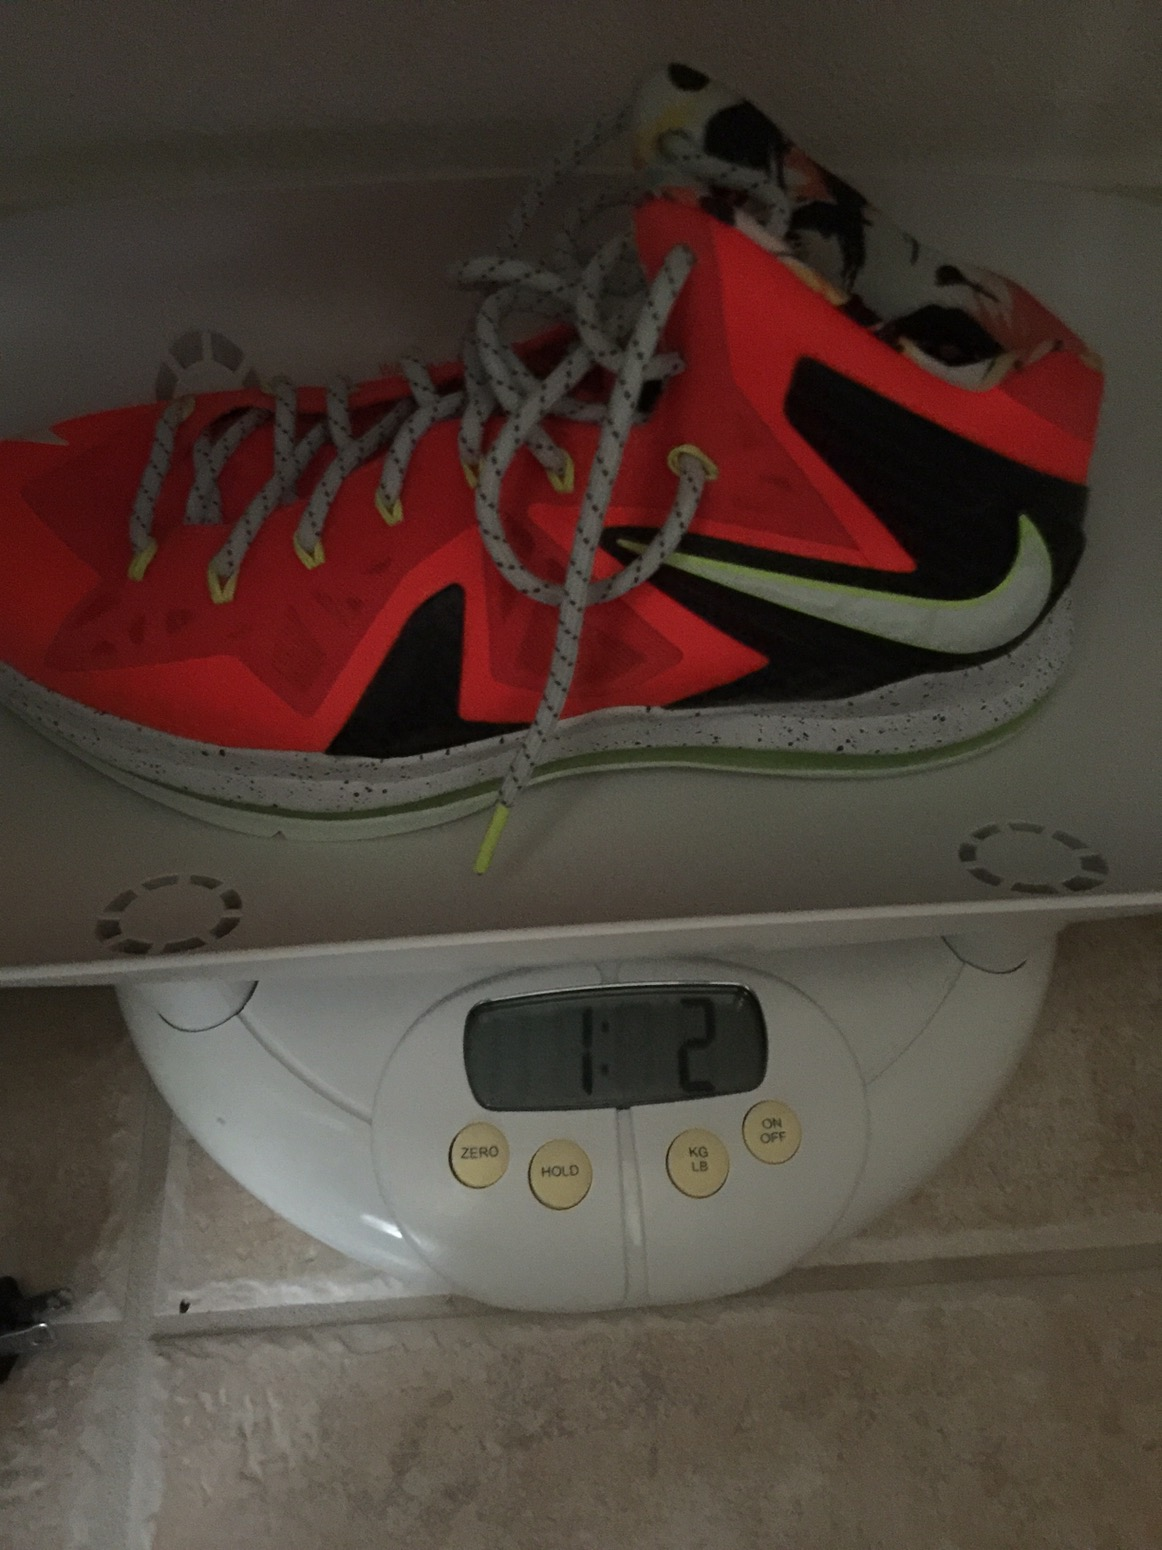 a158848ab1d47 Pretty light for a Lebron shoe at 17 oz but heavier than average shoes  today by about 2-3 oz. The Elite weighs an ounce more and I m guessing it  is due to ...